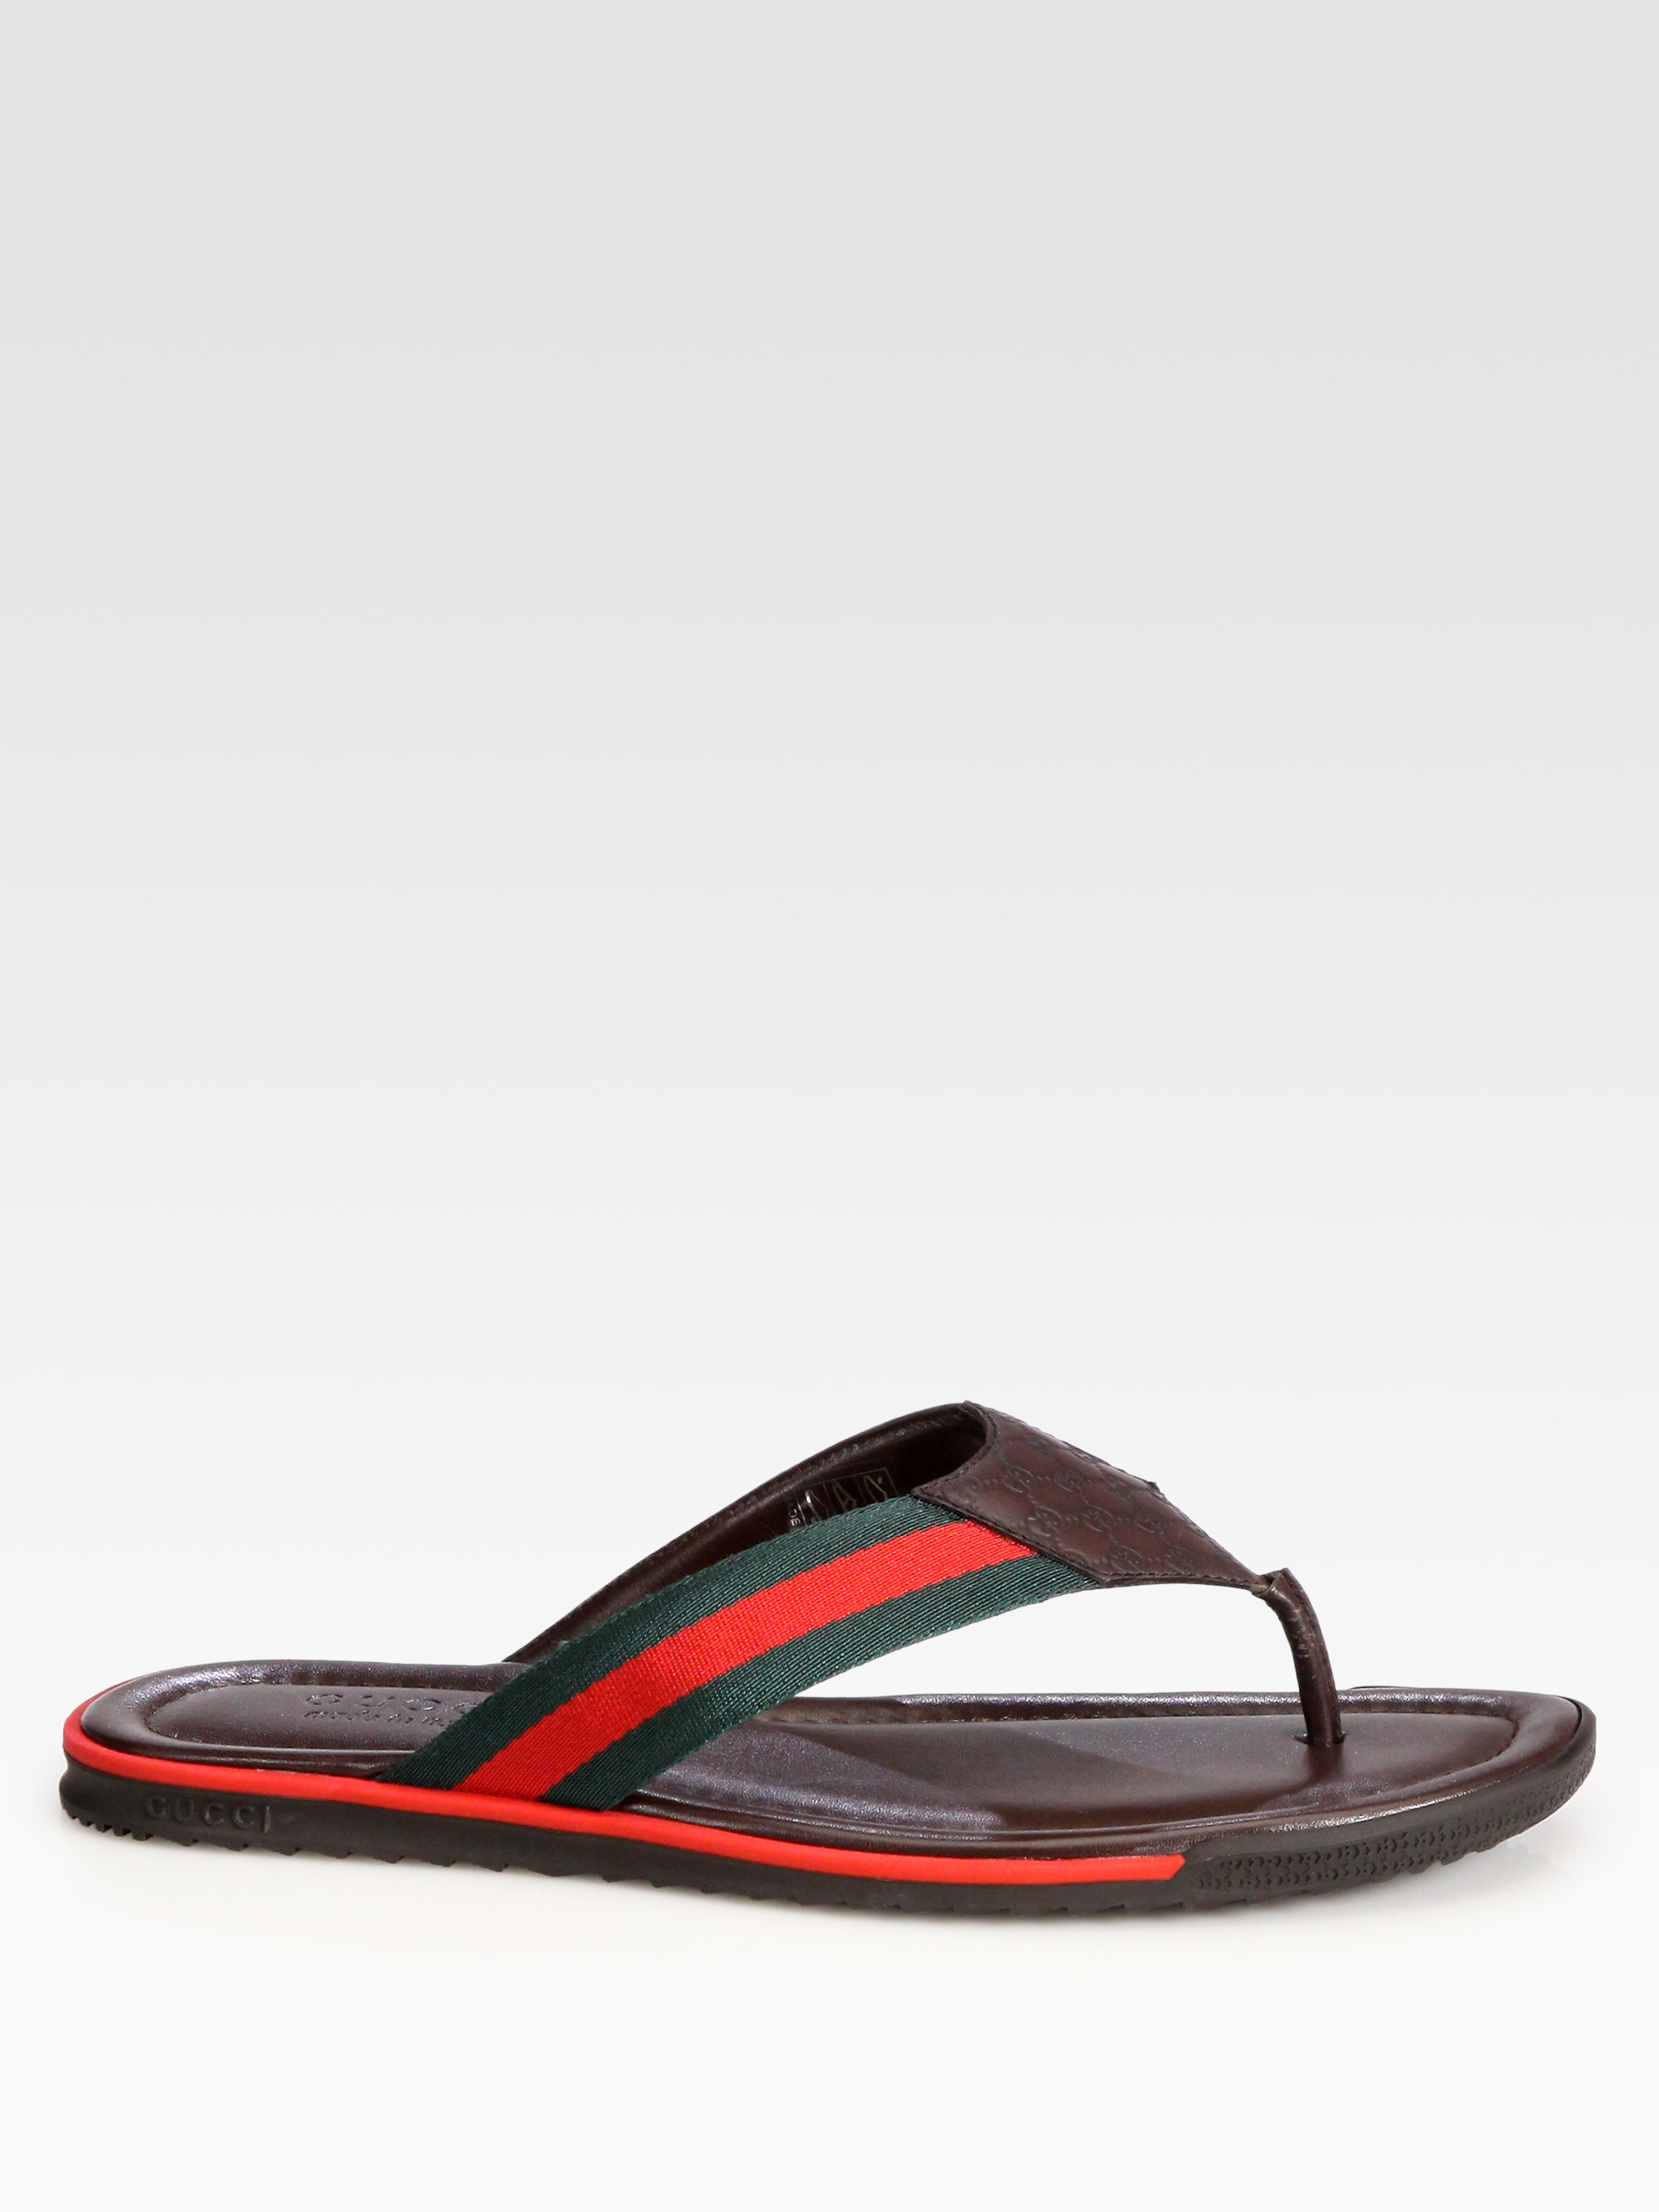 c1c974d8b Lyst - Gucci Thong Sandals in Brown for Men